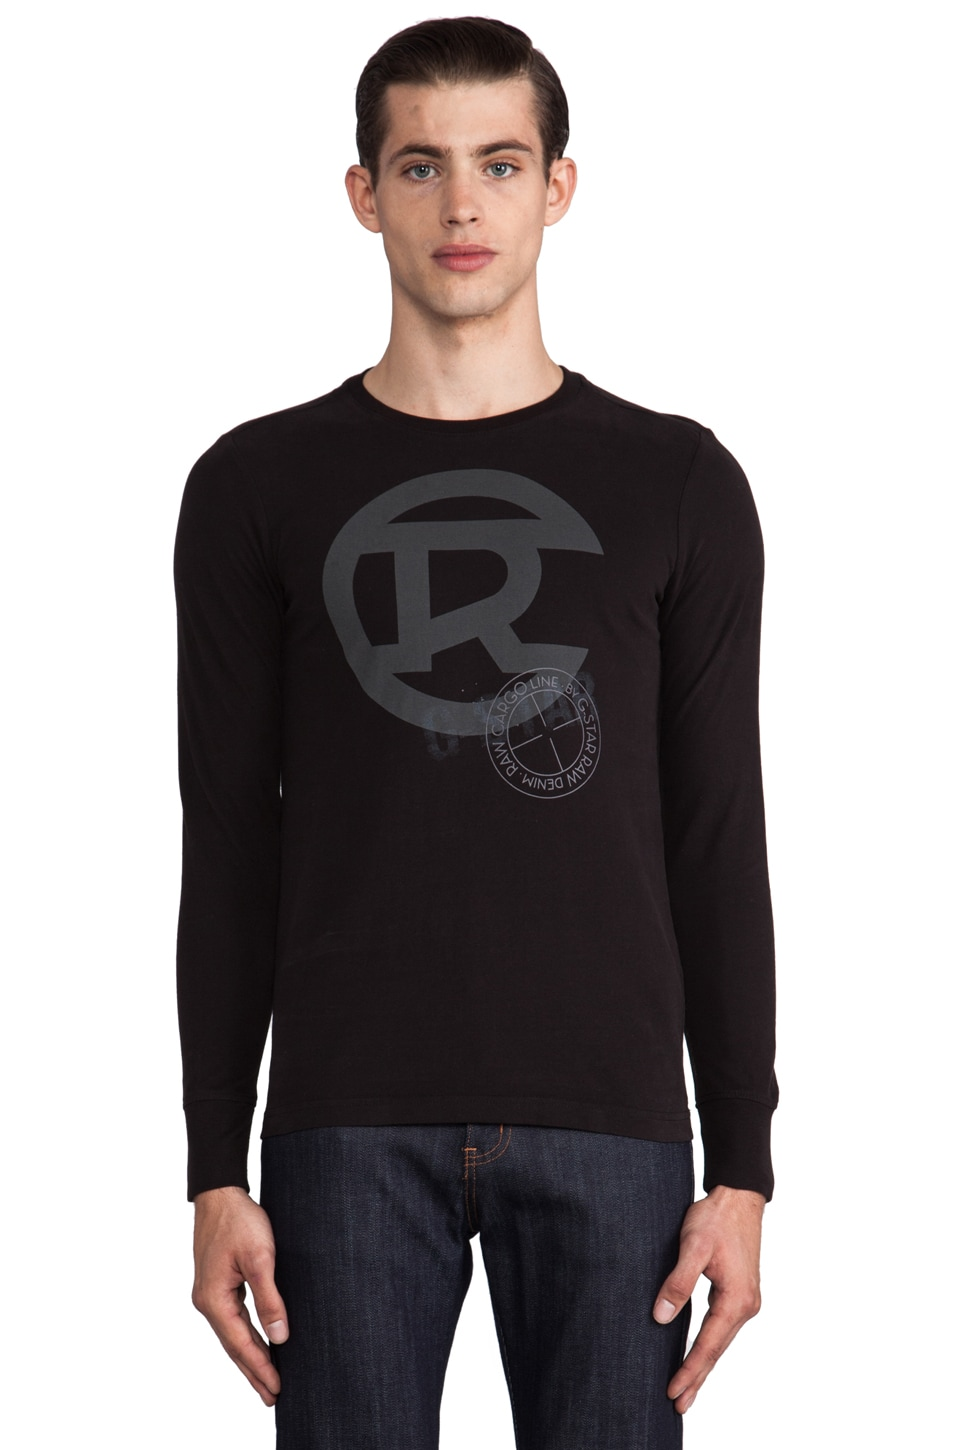 G-Star Byron R Long Sleeve in Black